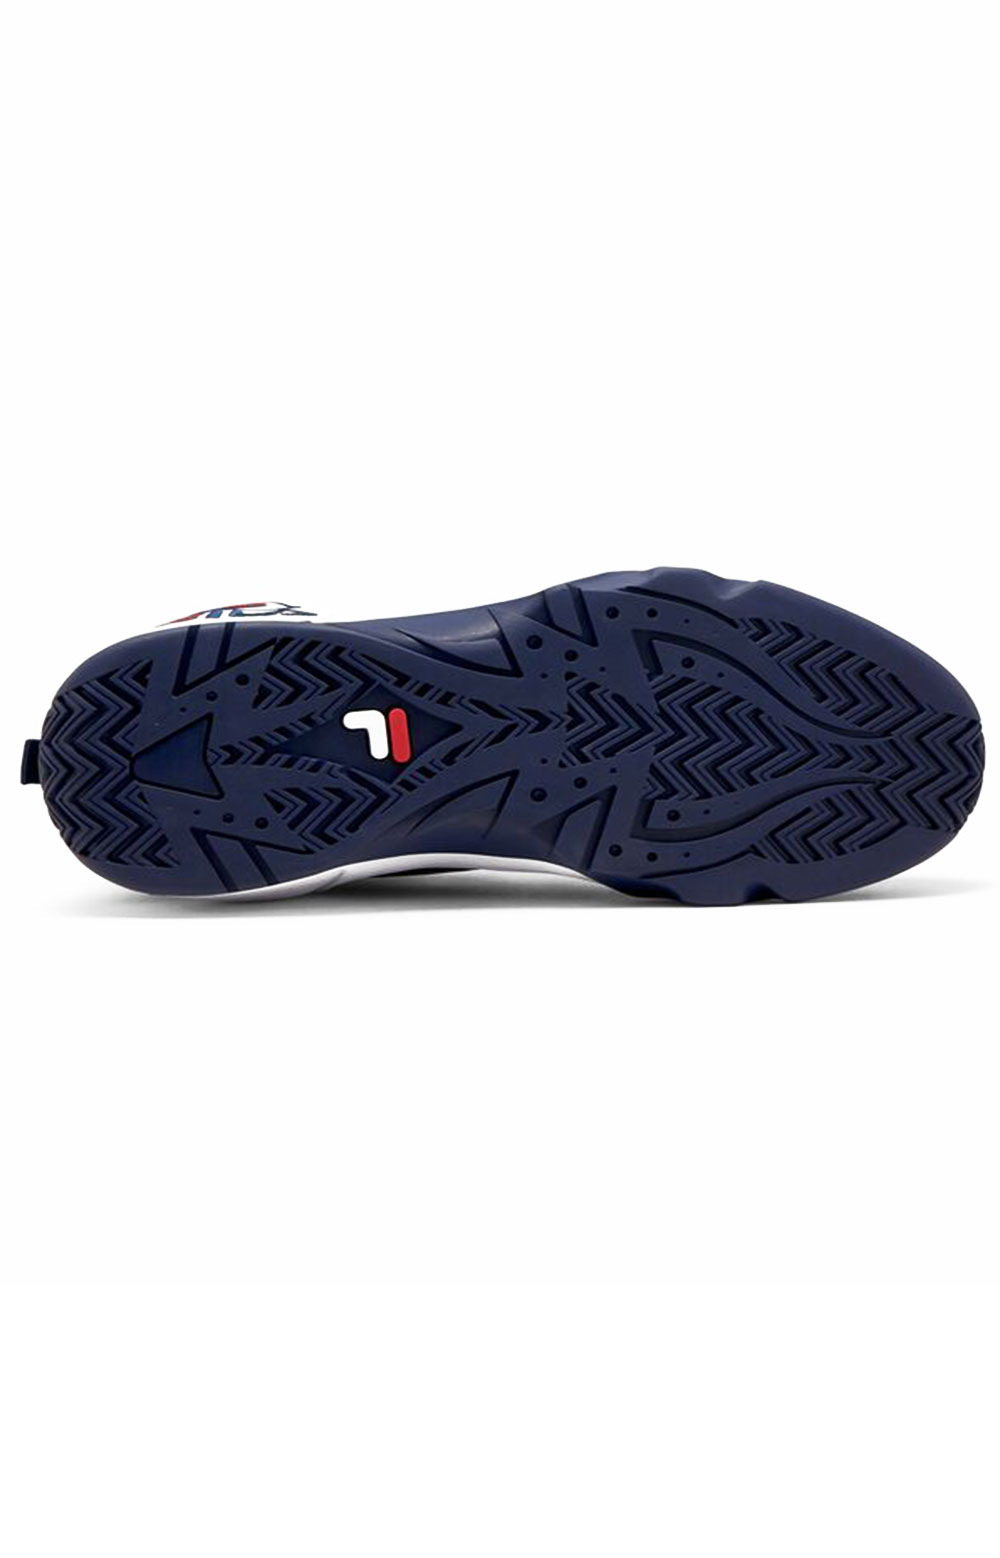 Grant Hill 1 Offset Shoes - White/Navy/Red  3